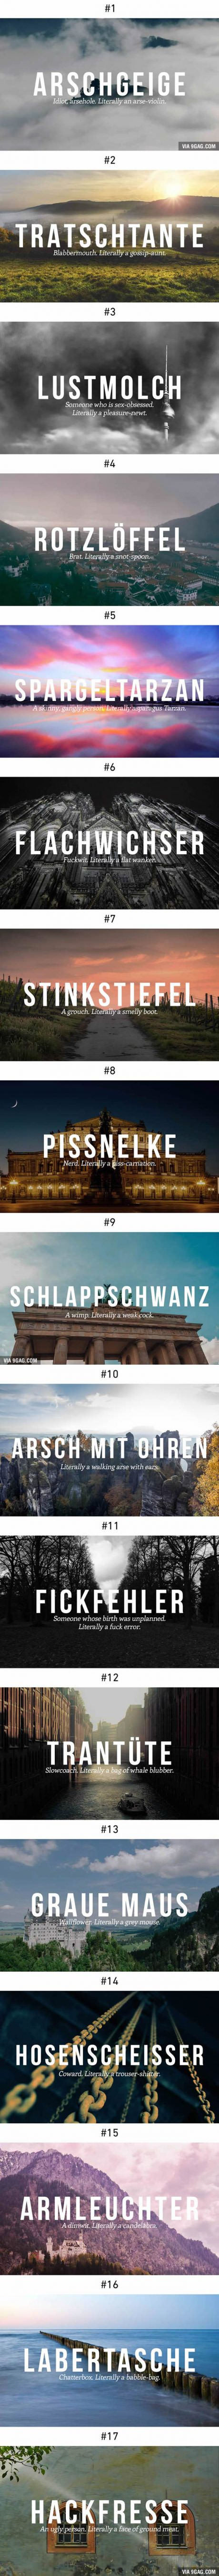 Brilliant German Insults